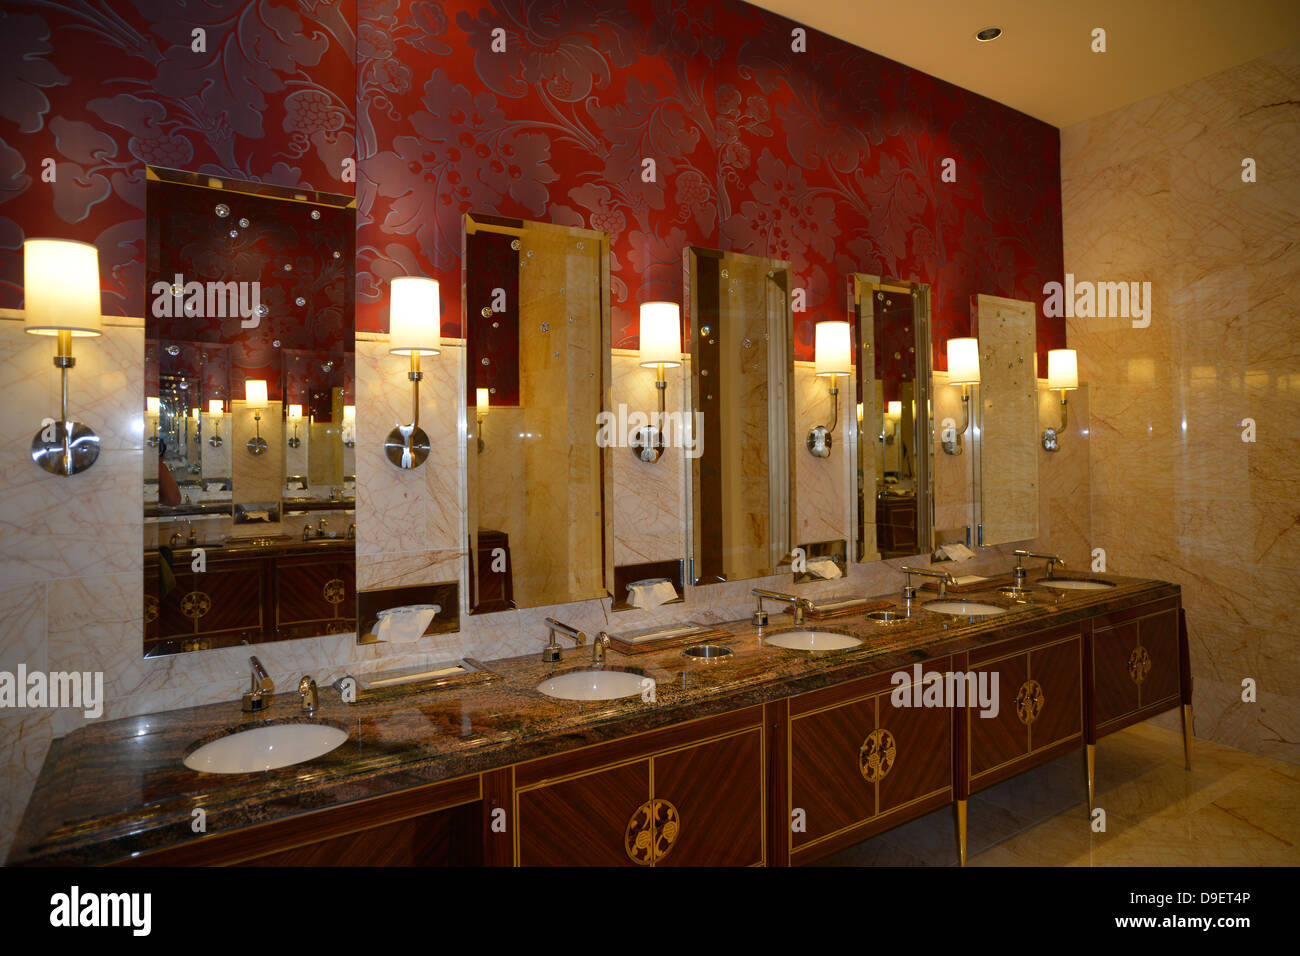 Hotel Wash Toilet High Resolution Stock Photography And Images Alamy